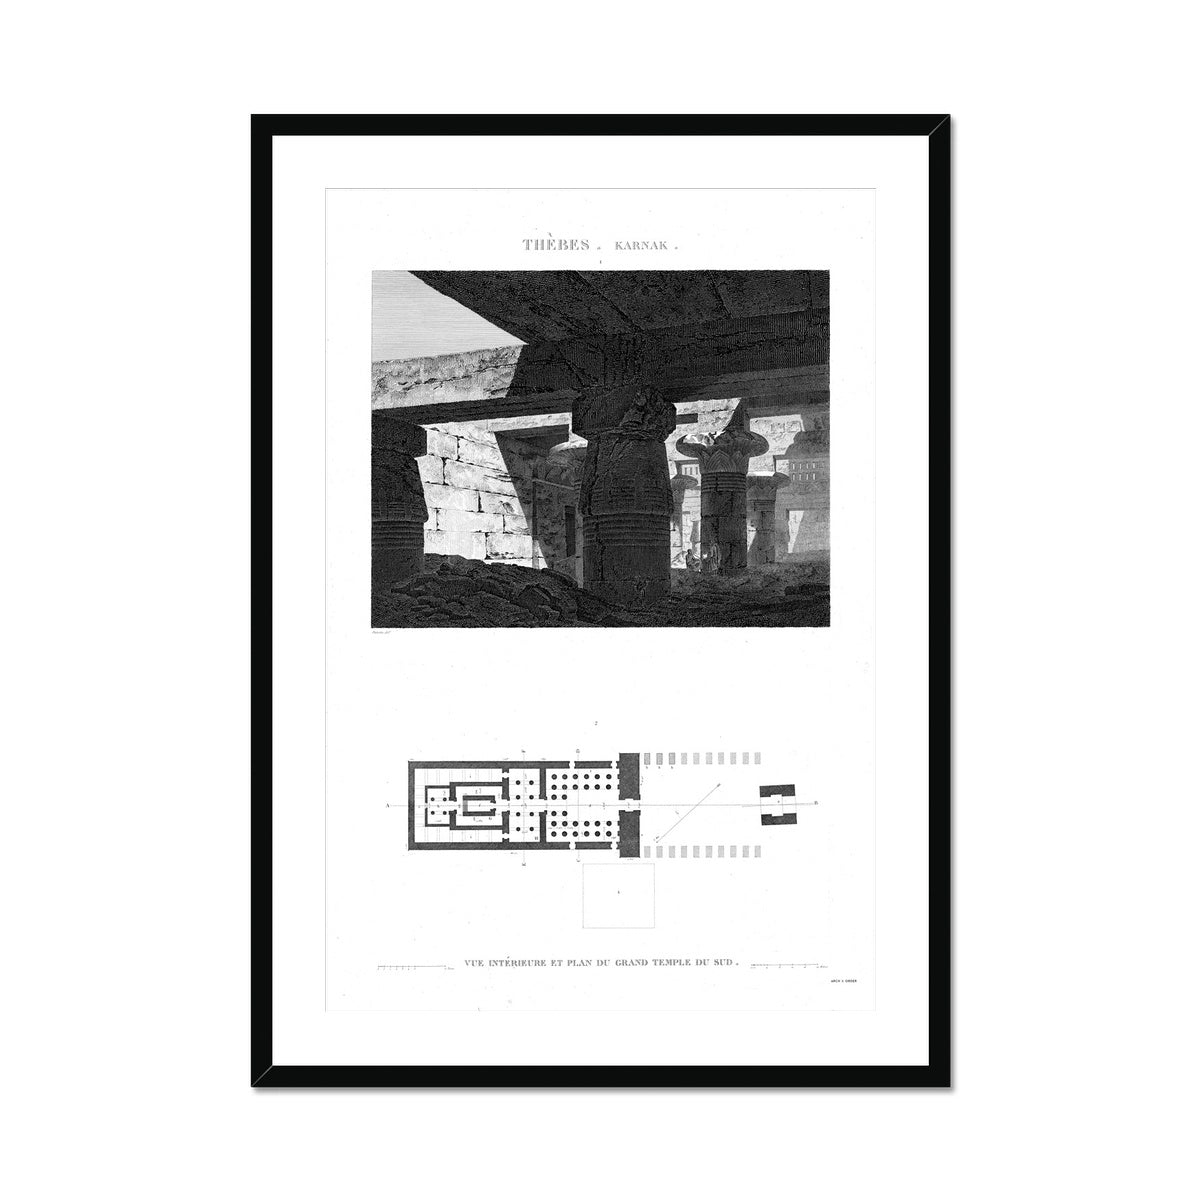 Interior View and Plan of the Great South Temple - Karnak - Thebes Egypt -  Framed & Mounted Print